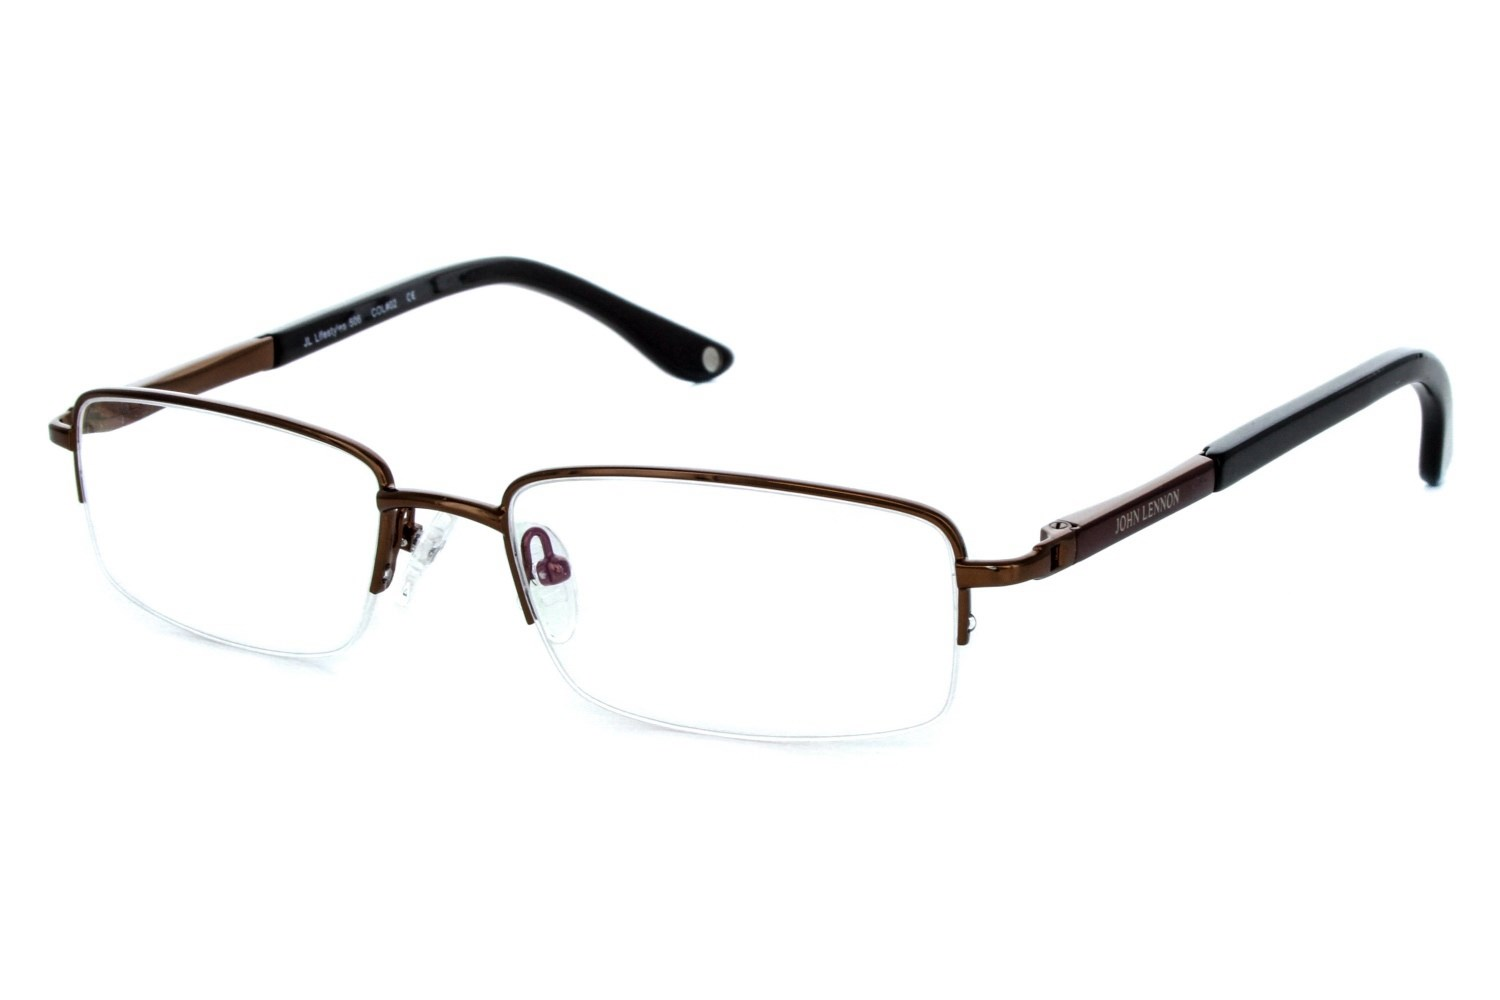 John Lennon Lifestyles 506 Prescription Eyeglasses Frames